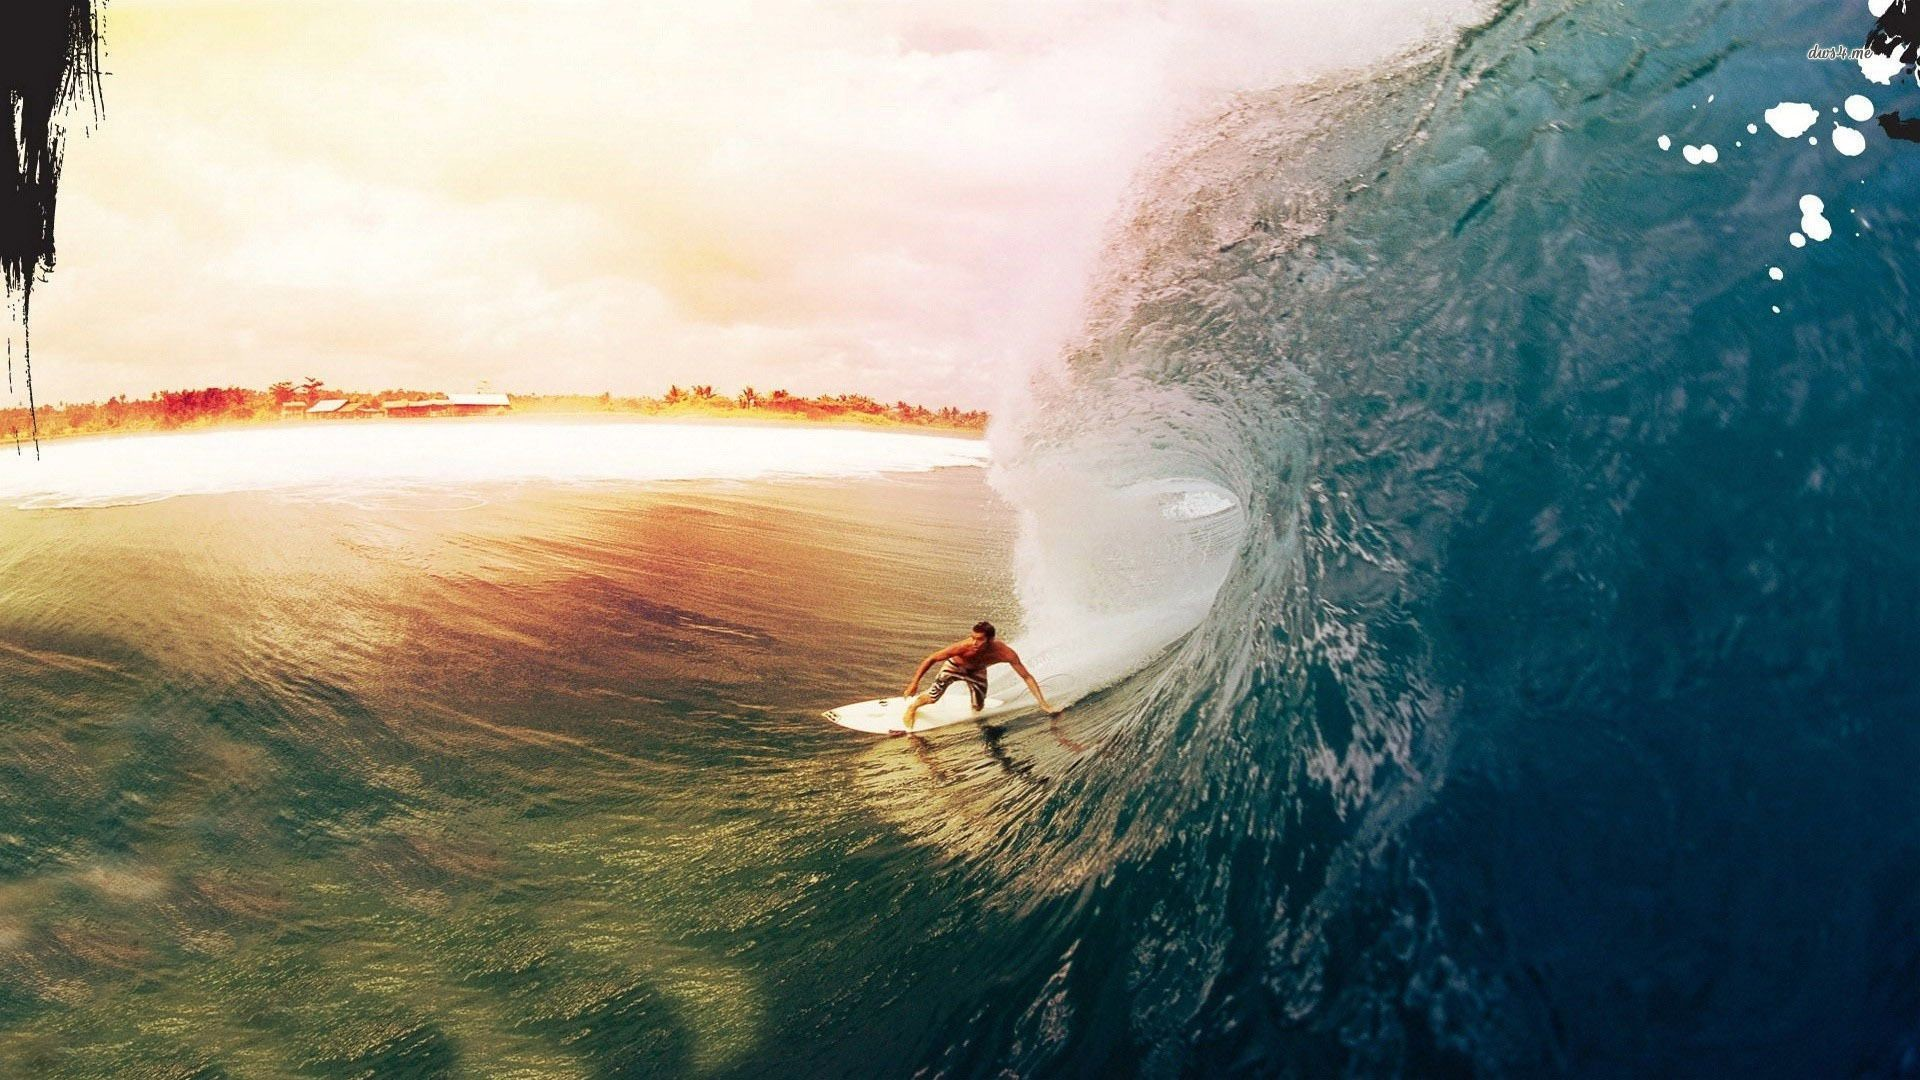 Surfer wallpaper – Sport wallpapers – #20230